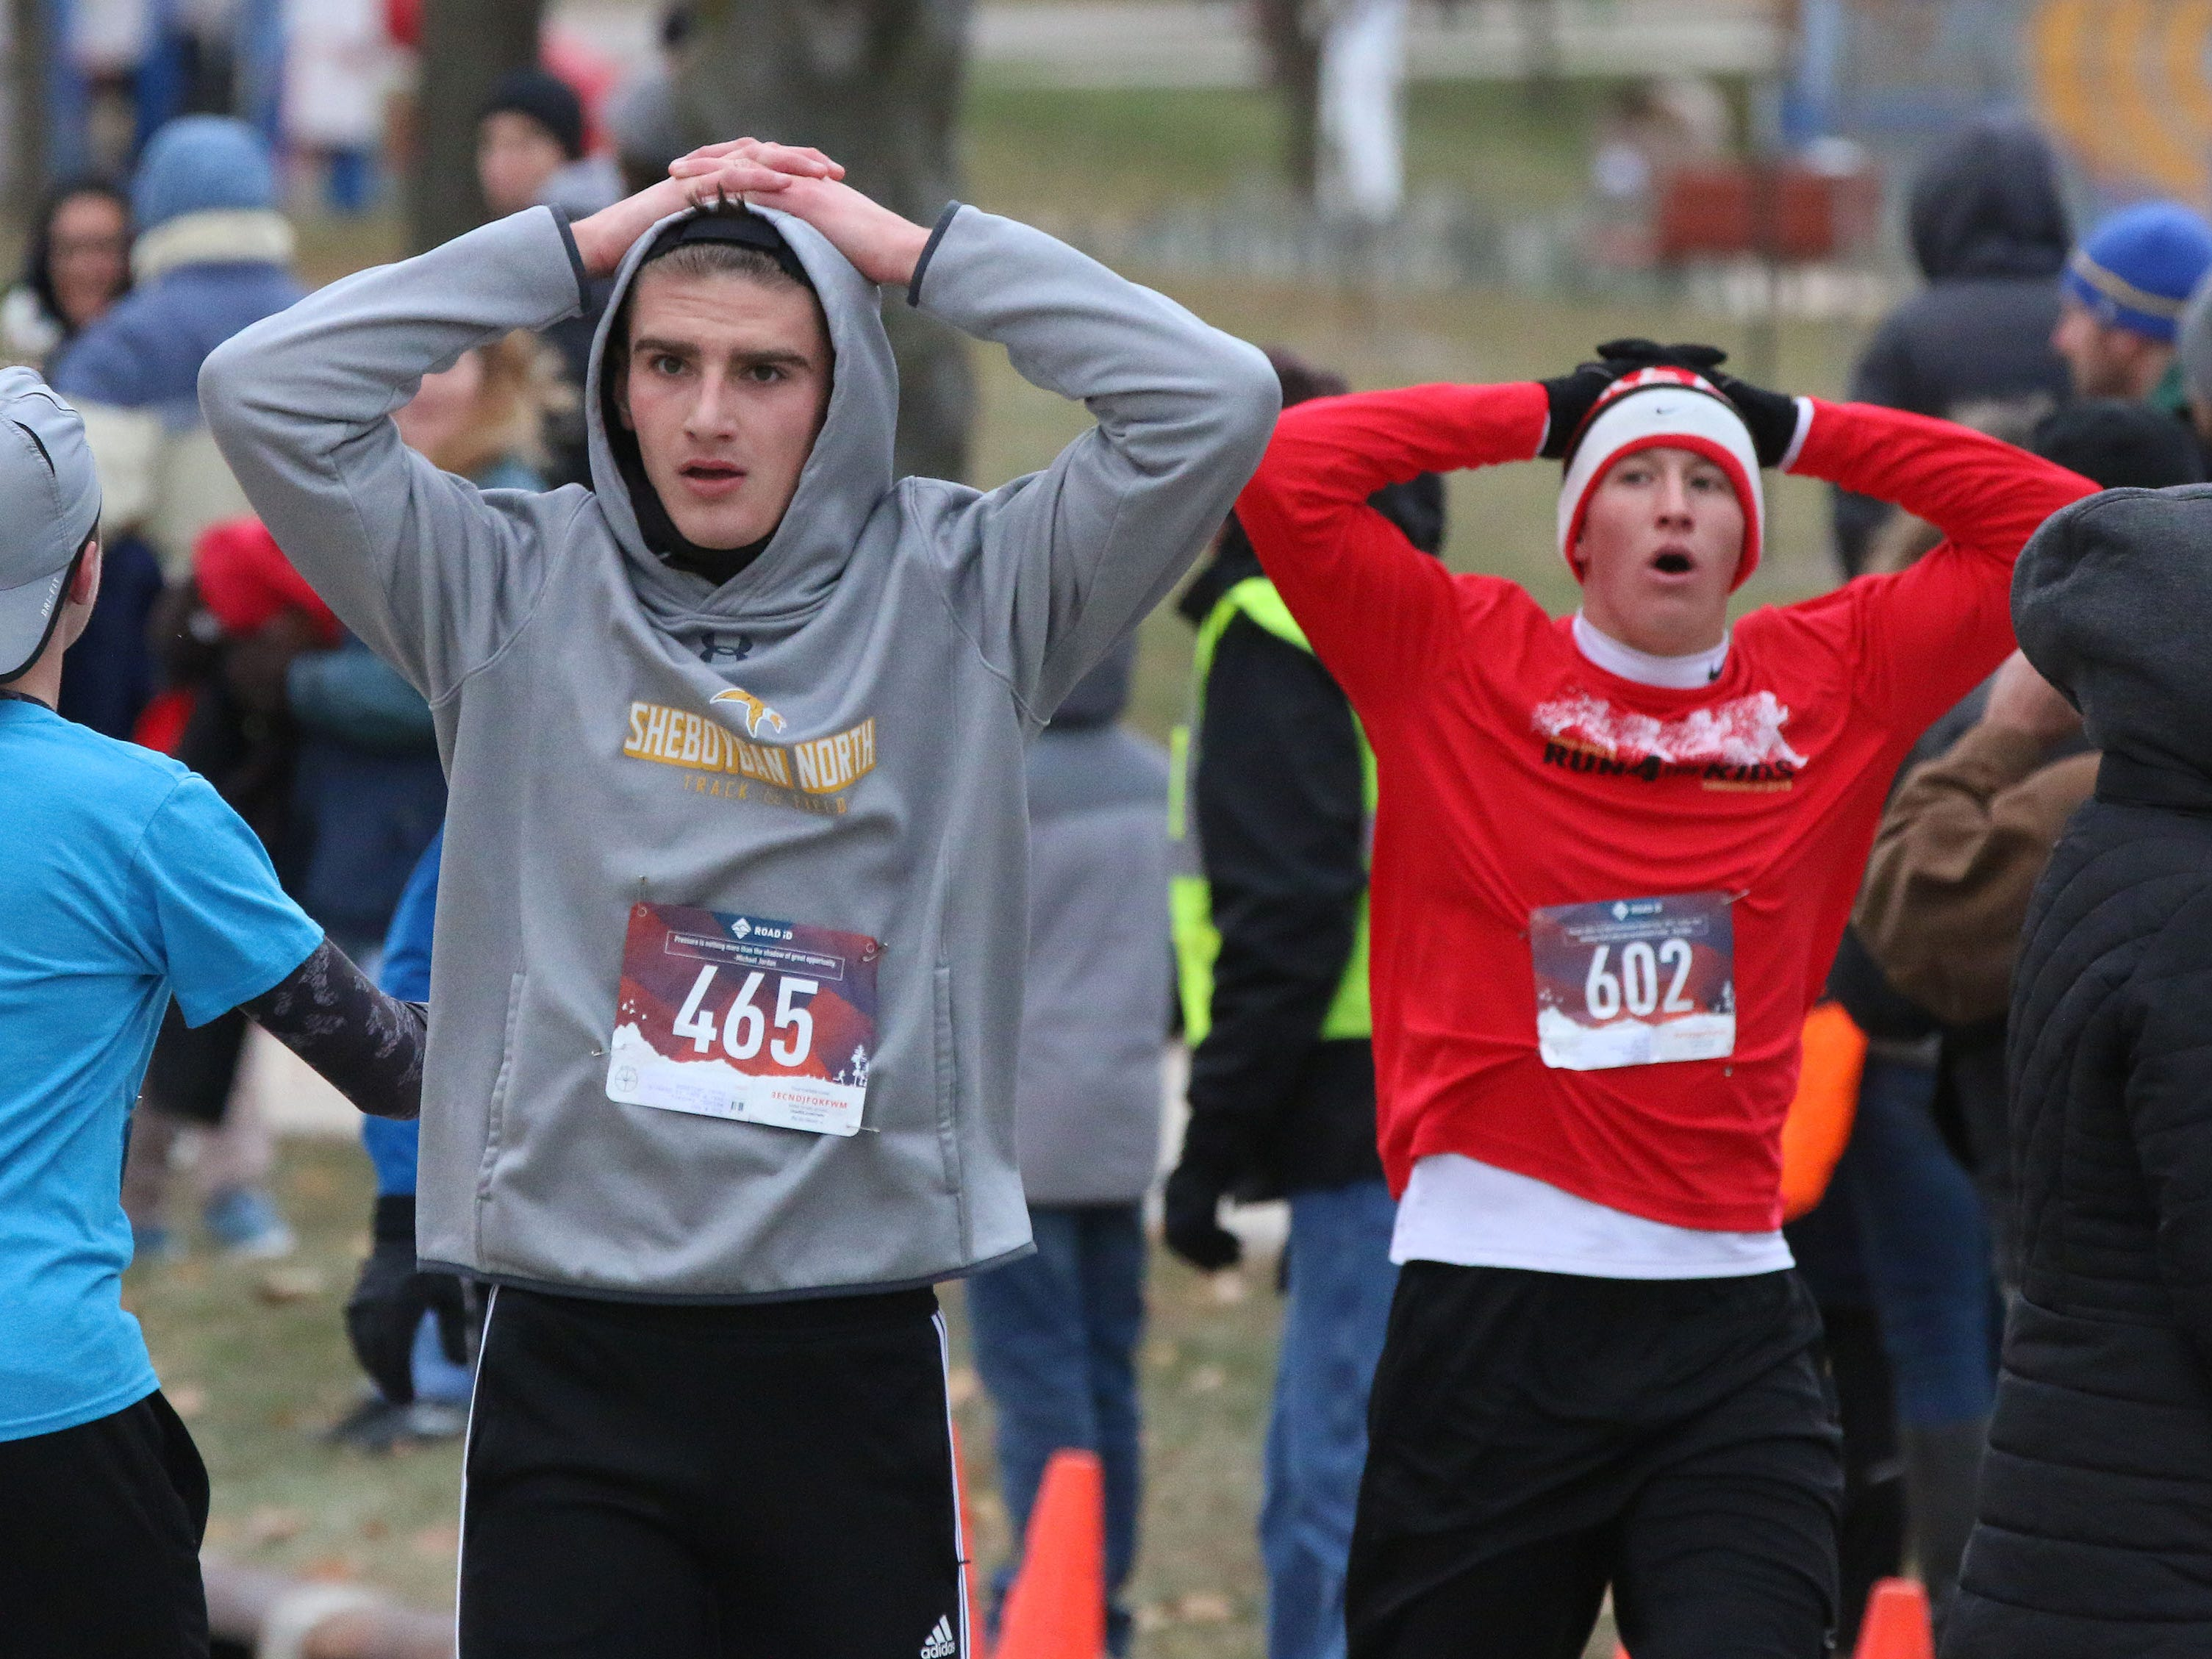 Runners work to recover following their run at the Doug Opel Run for the Kids, Thursday, November 22, 2018, in Sheboygan, Wis.